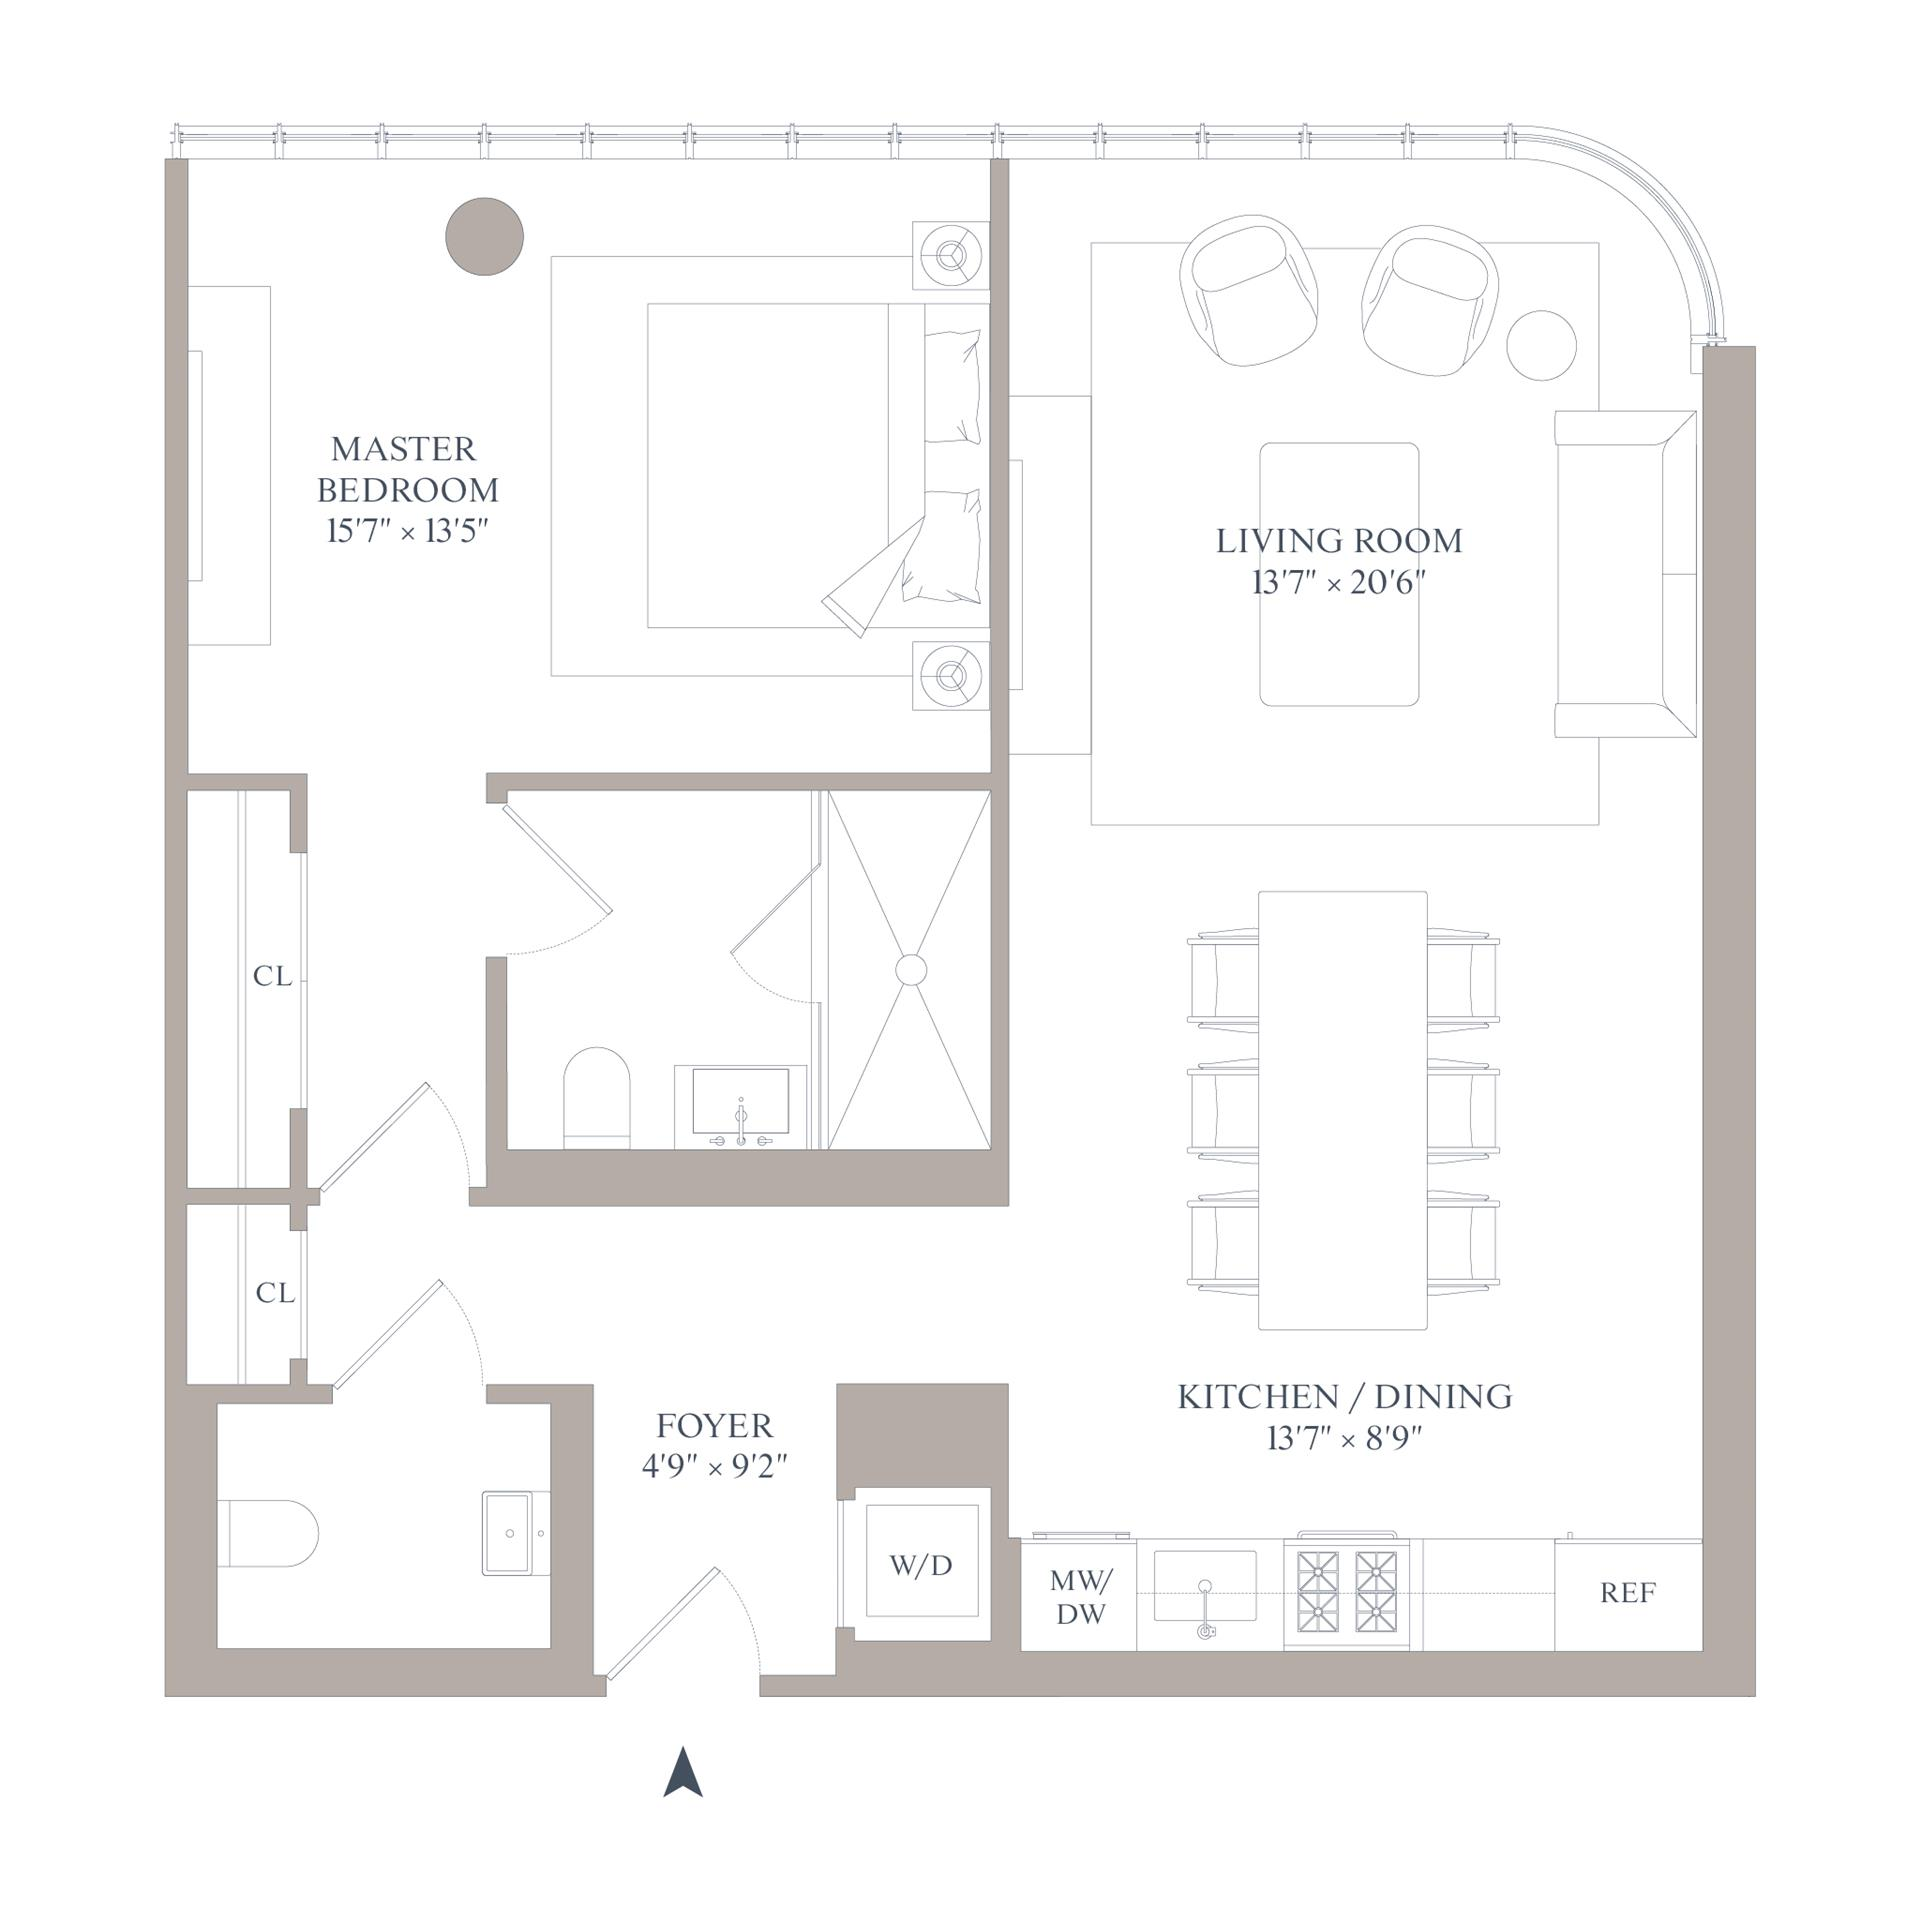 Floor plan of 565 Broome St, N9D - SoHo - Nolita, New York